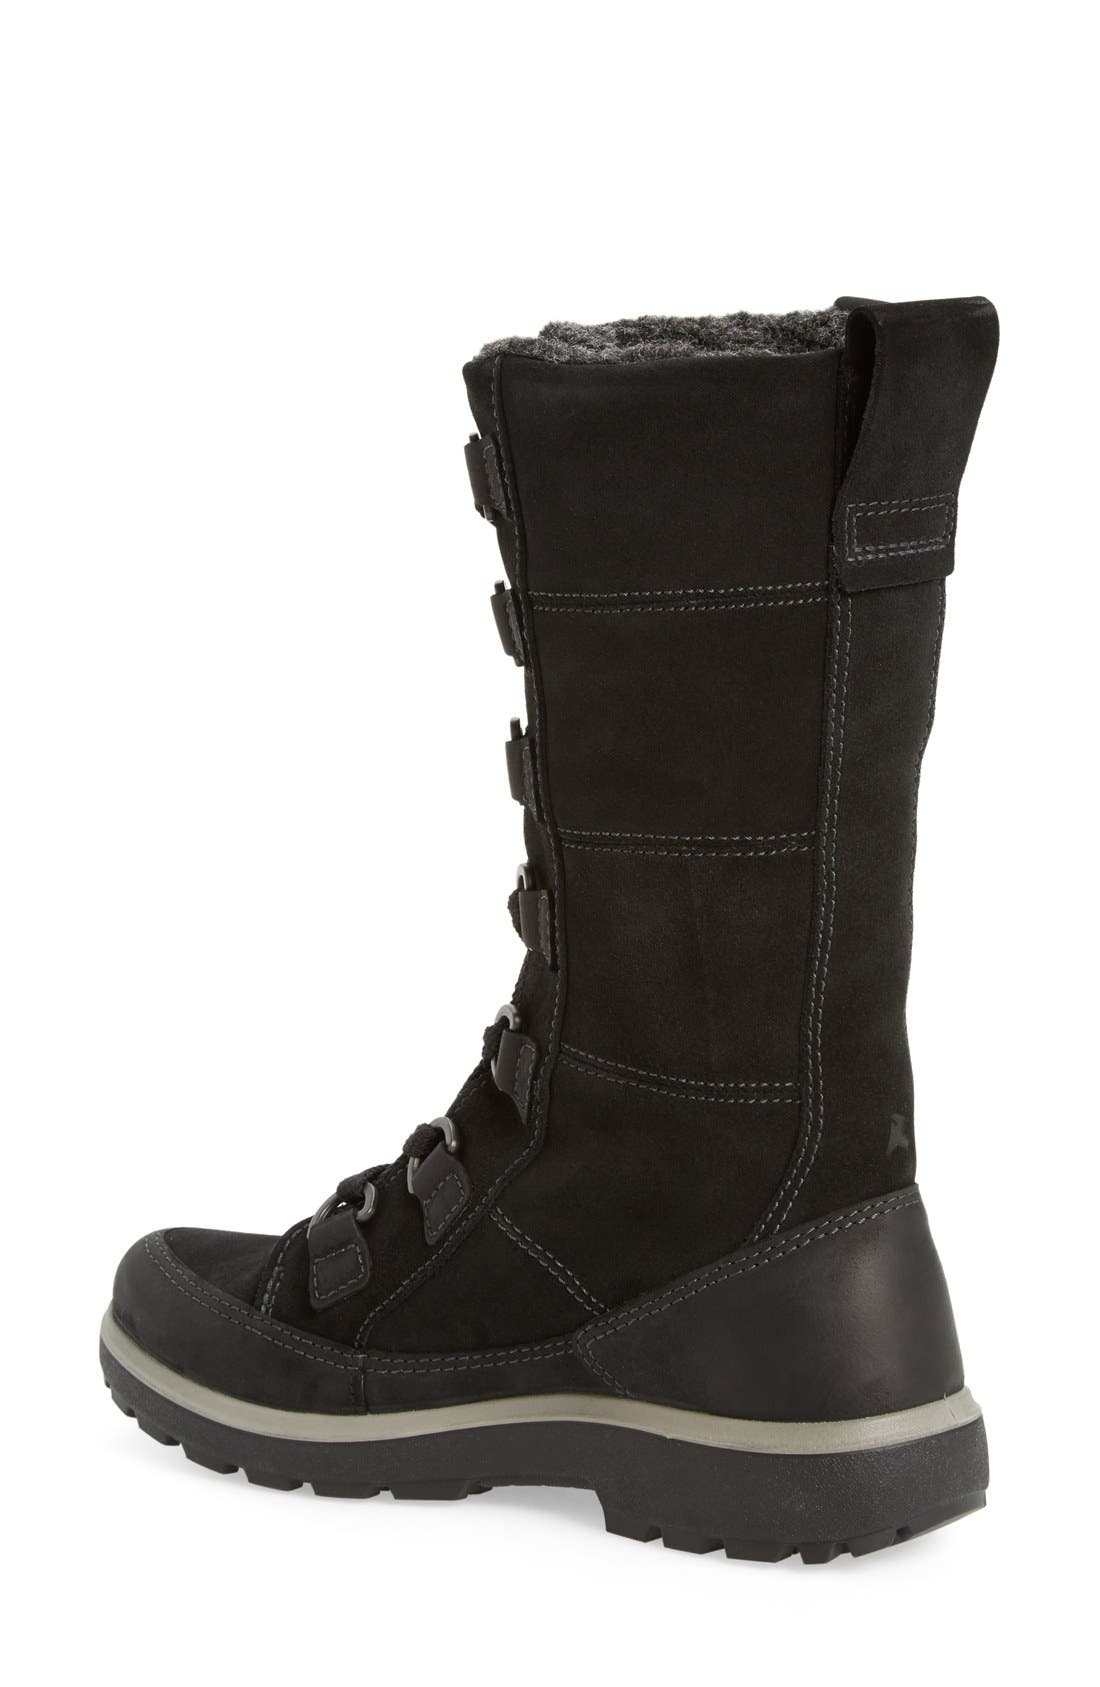 'Gora' Gore-Tex<sup>®</sup> Waterproof Lace-Up Boot,                             Alternate thumbnail 2, color,                             019